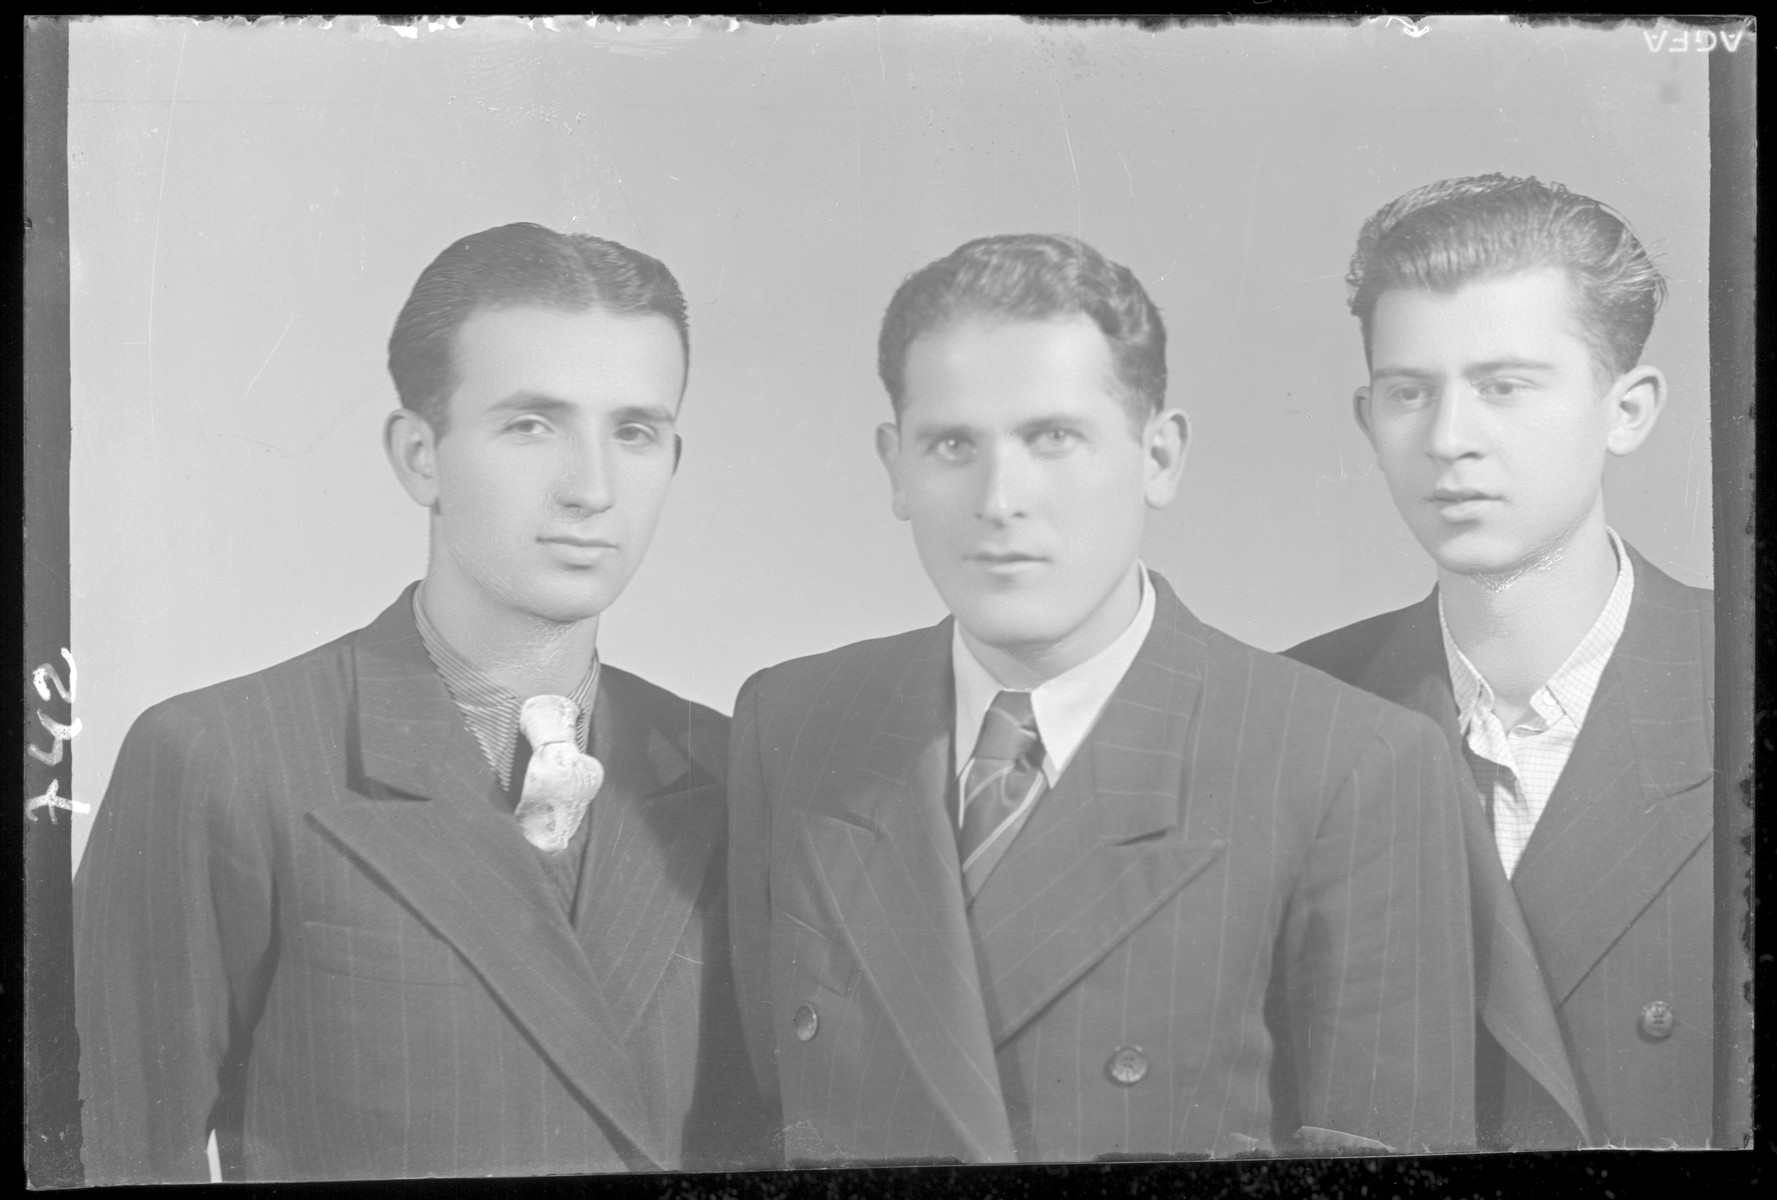 Studio portrait of Ferene Perl and two other young men.